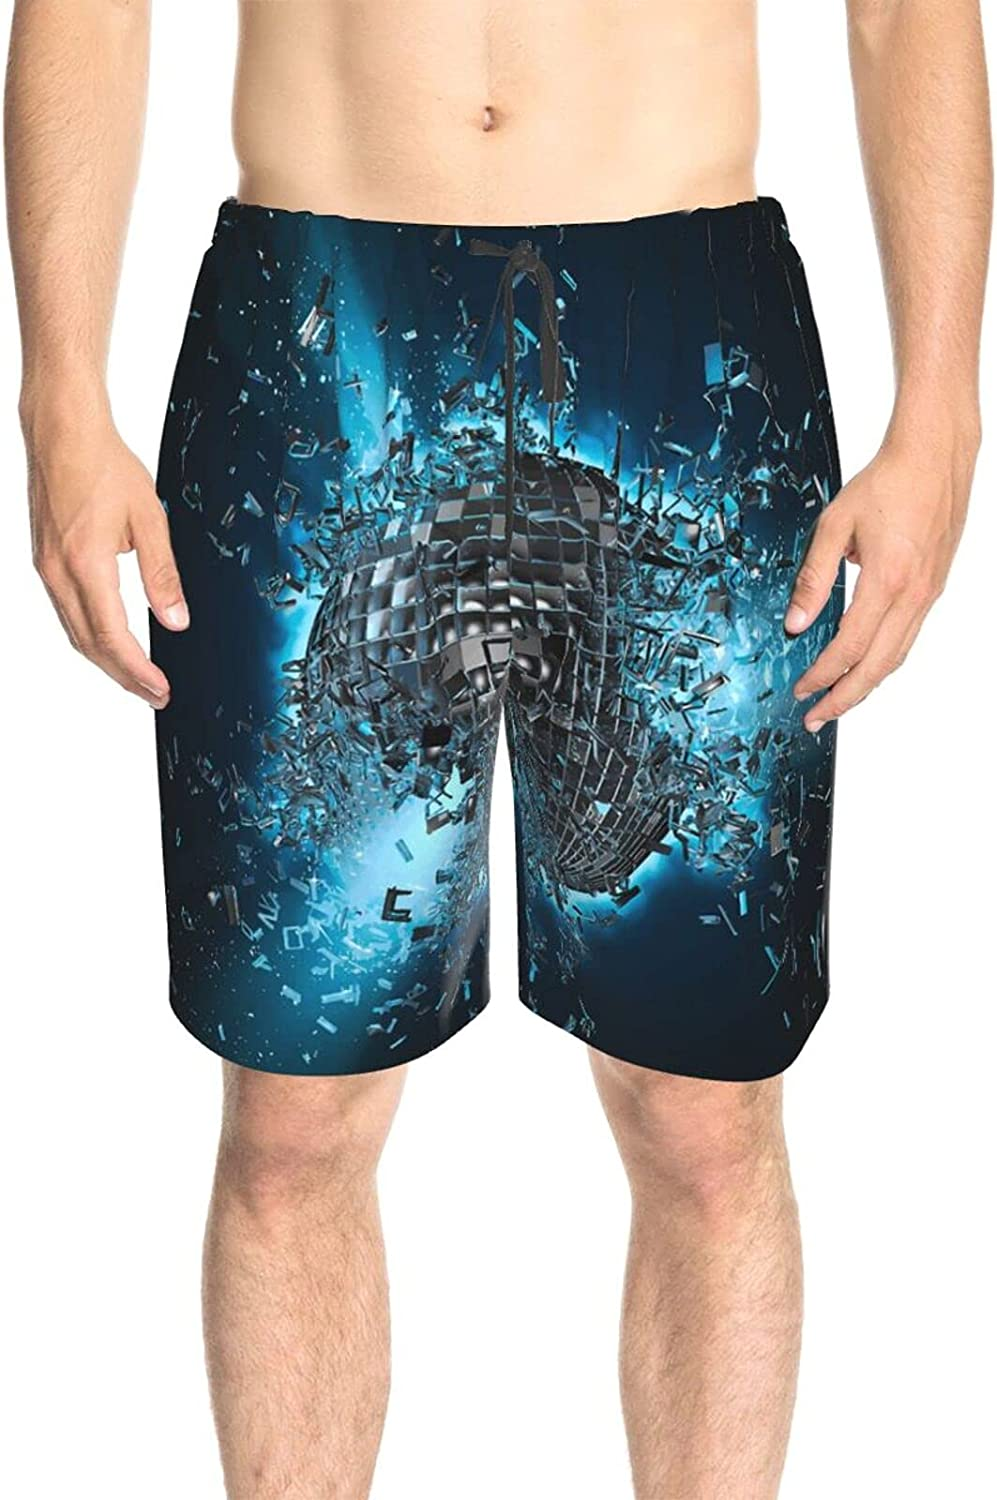 Mens Bathing Suits Disco Ball Explosion Bathing Suit Boardshorts Quick Dry Cool Swimwear Beach Shorts with Pockets